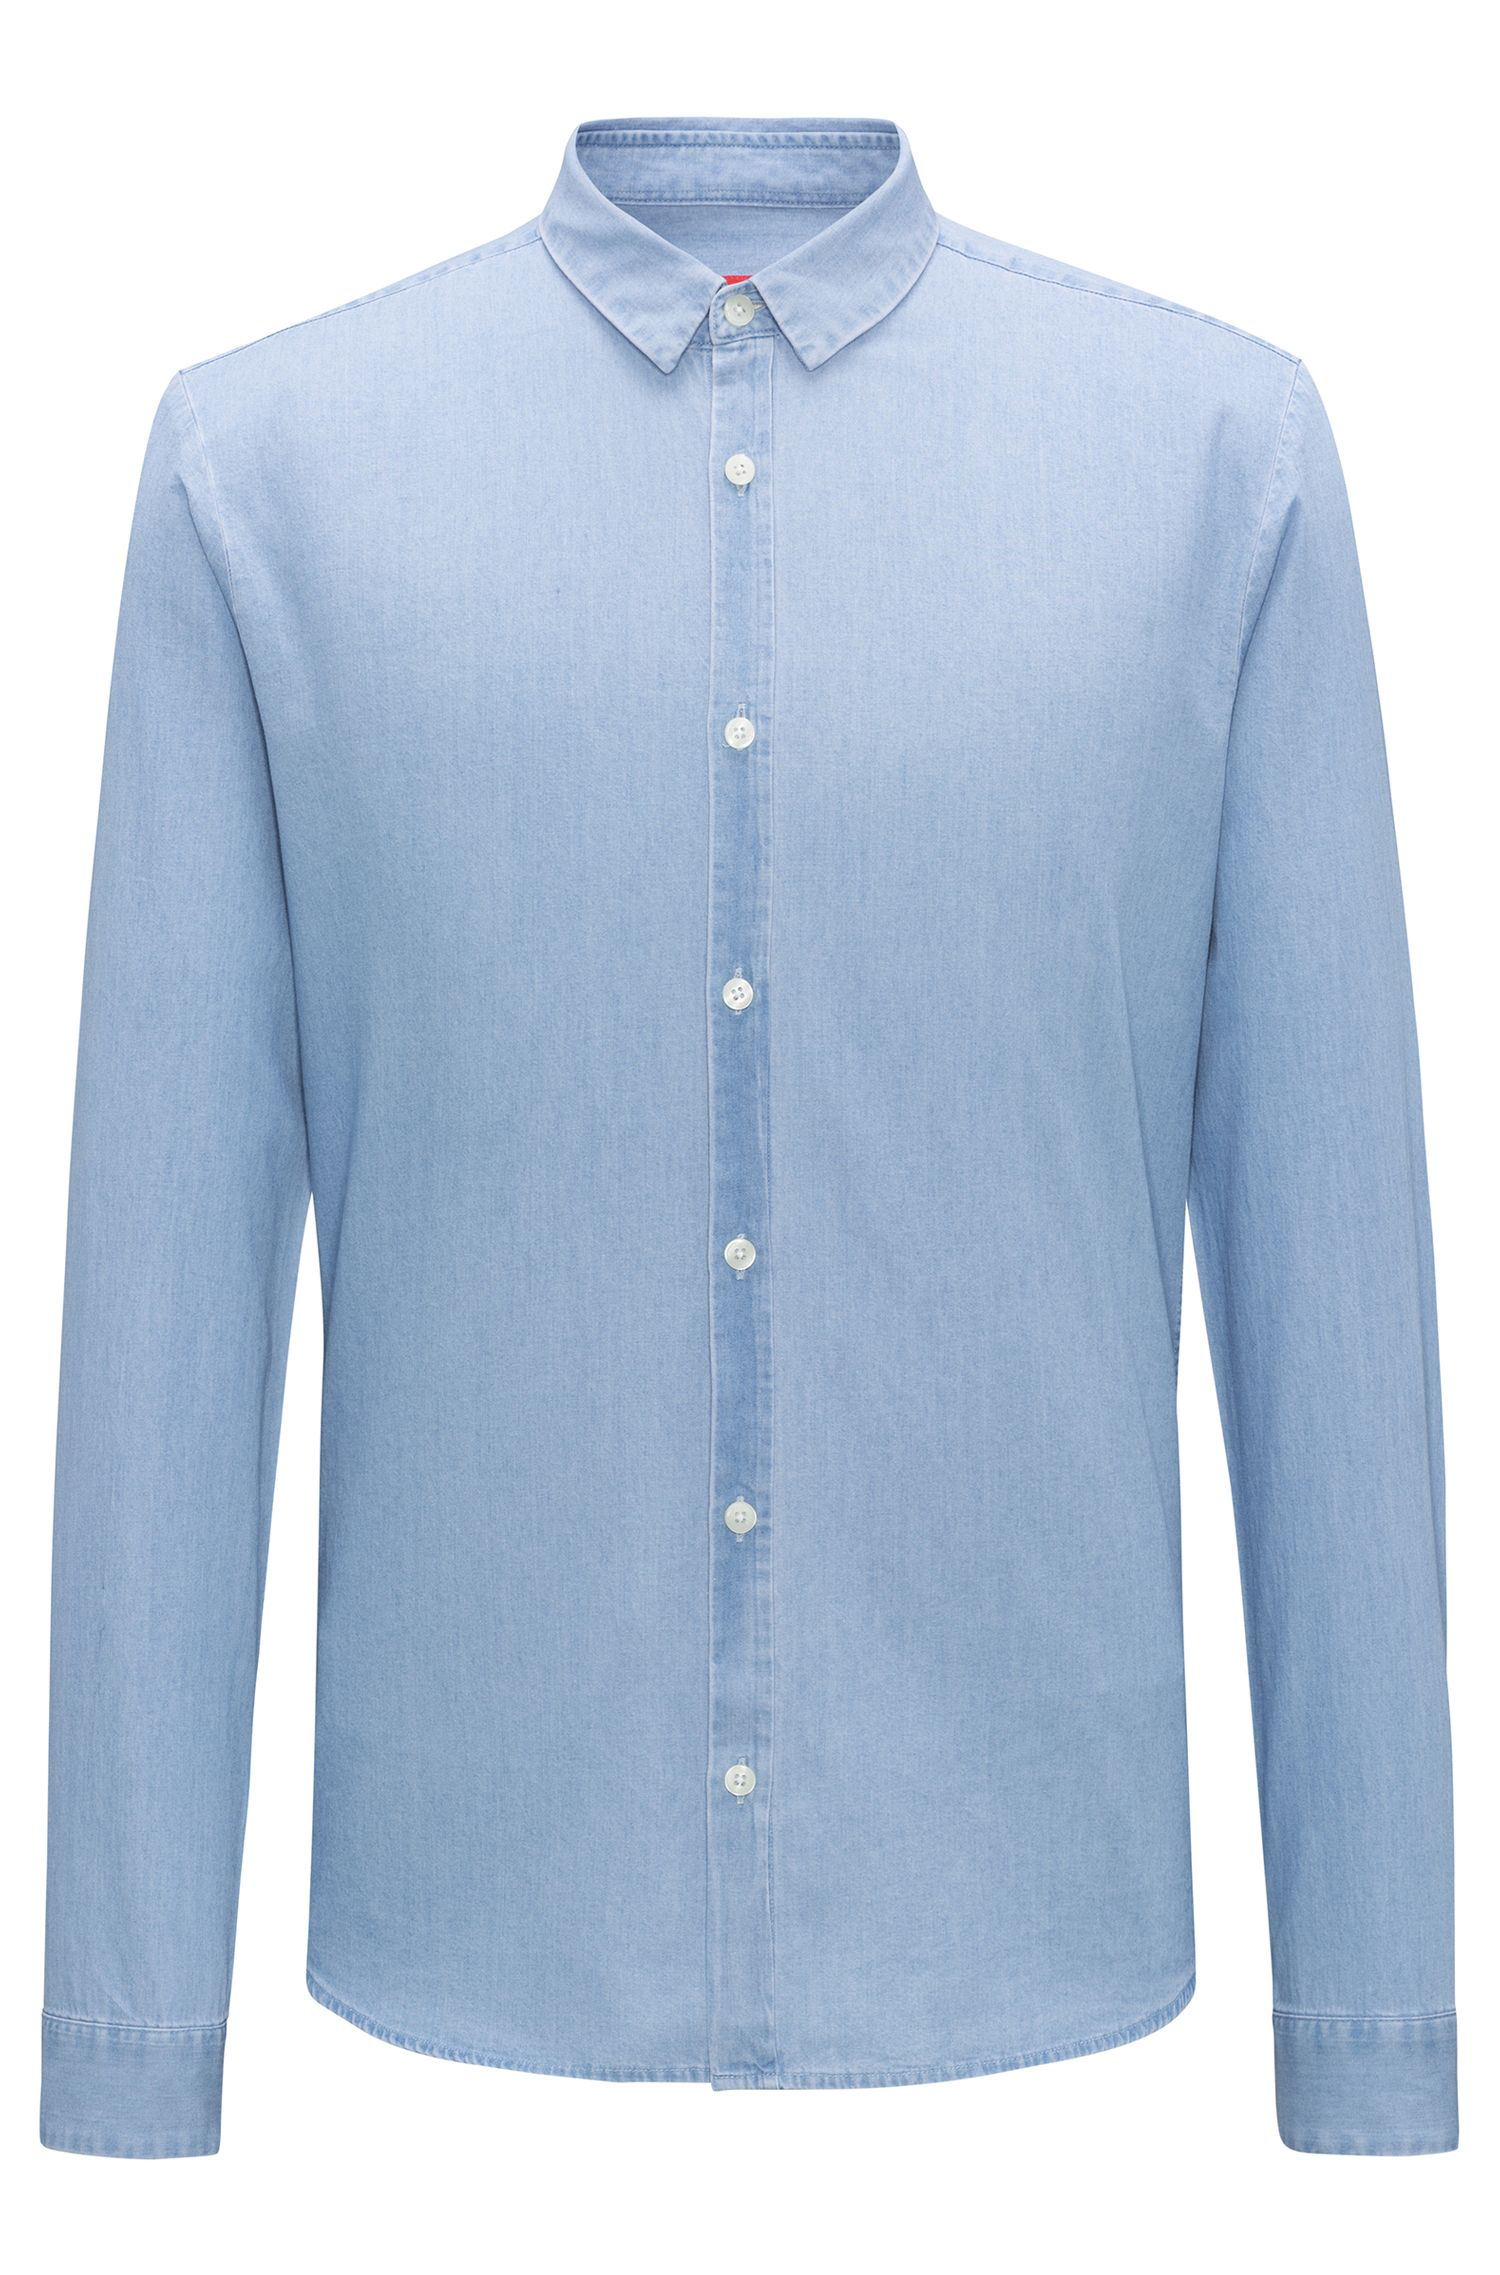 Extra-slim-fit shirt in bleached indigo denim